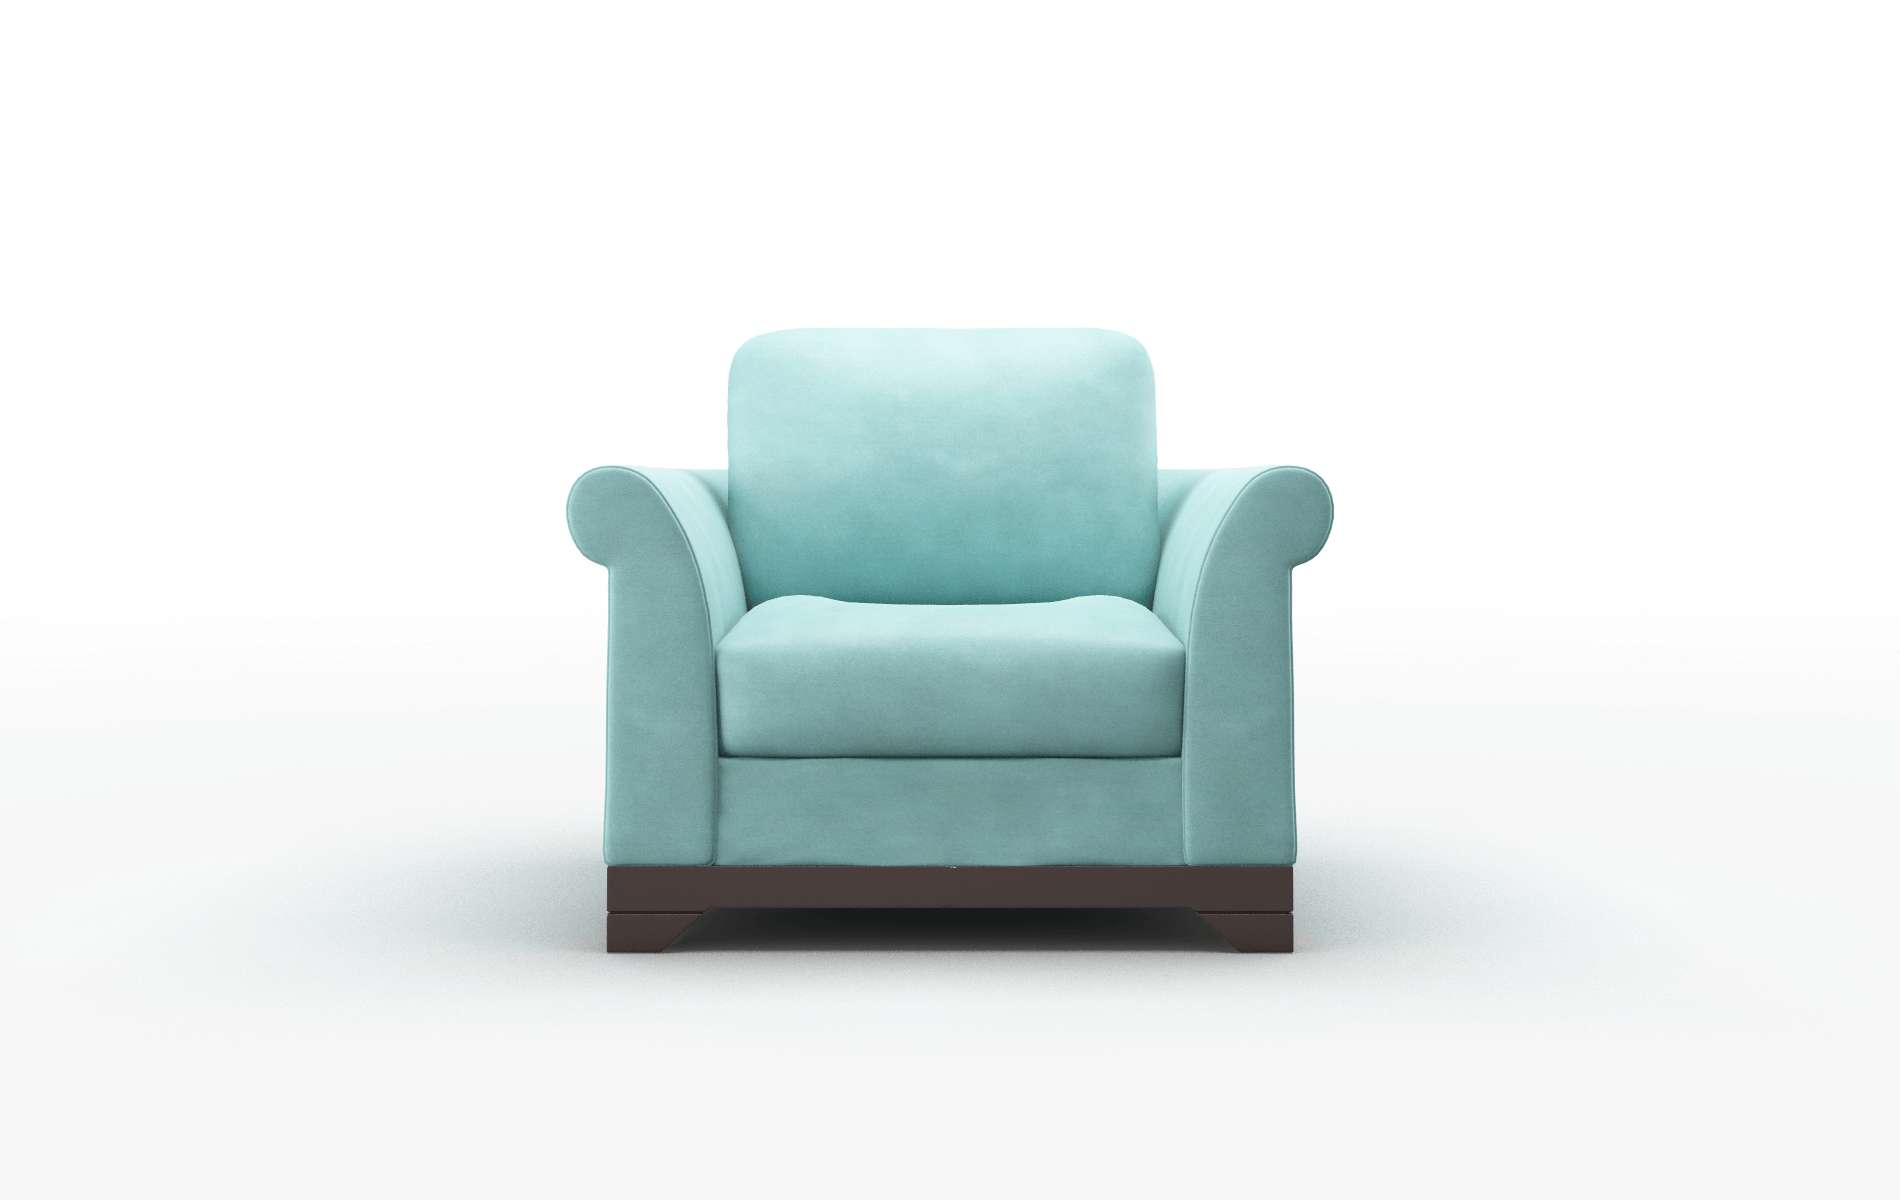 Denver Bella Caribbean chair espresso legs